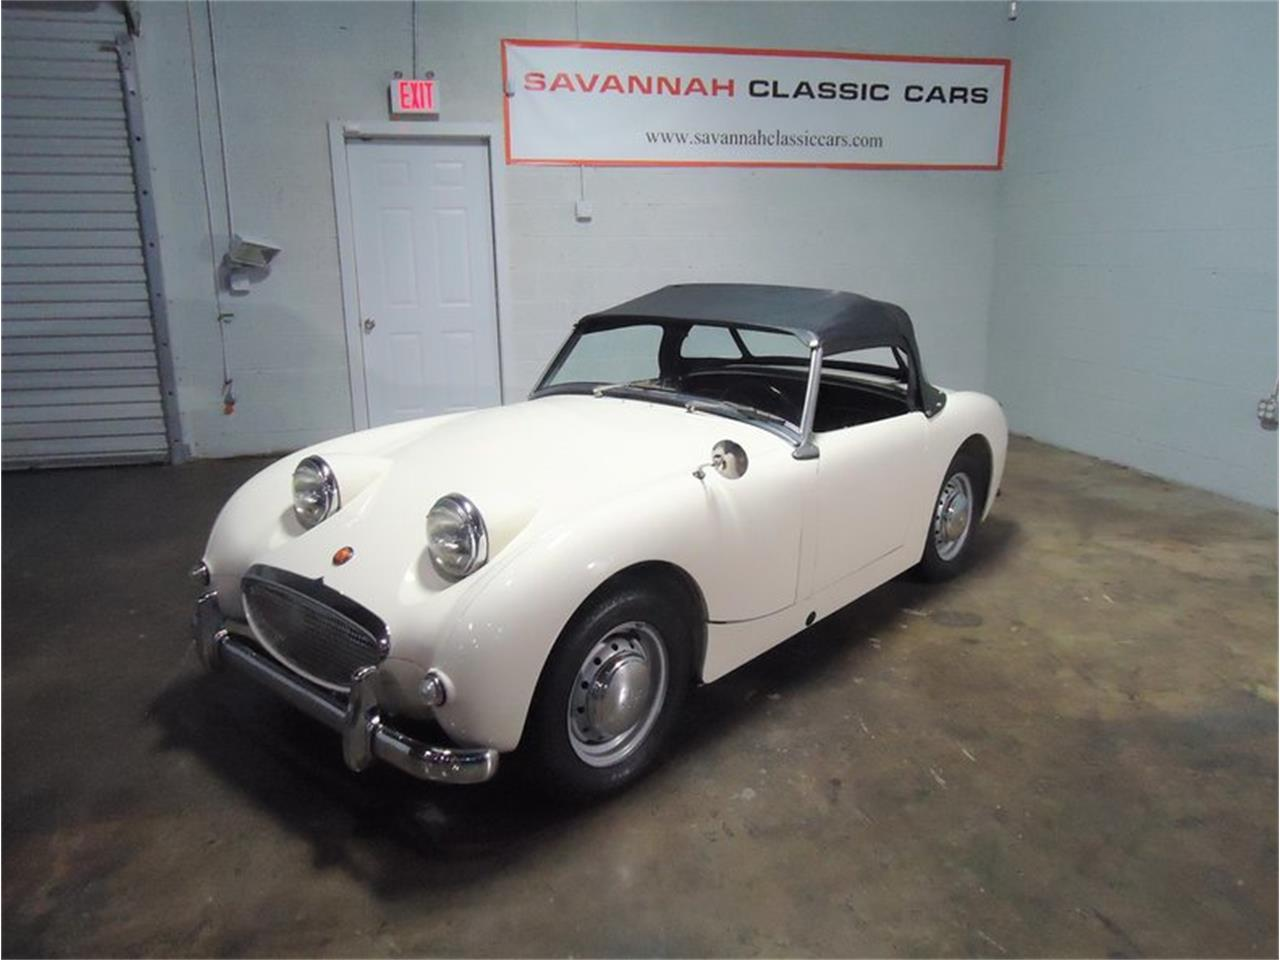 1959 Austin Healey Sprite for Sale   ClassicCars com   CC 1027878 Large Picture of  59 Sprite   M146